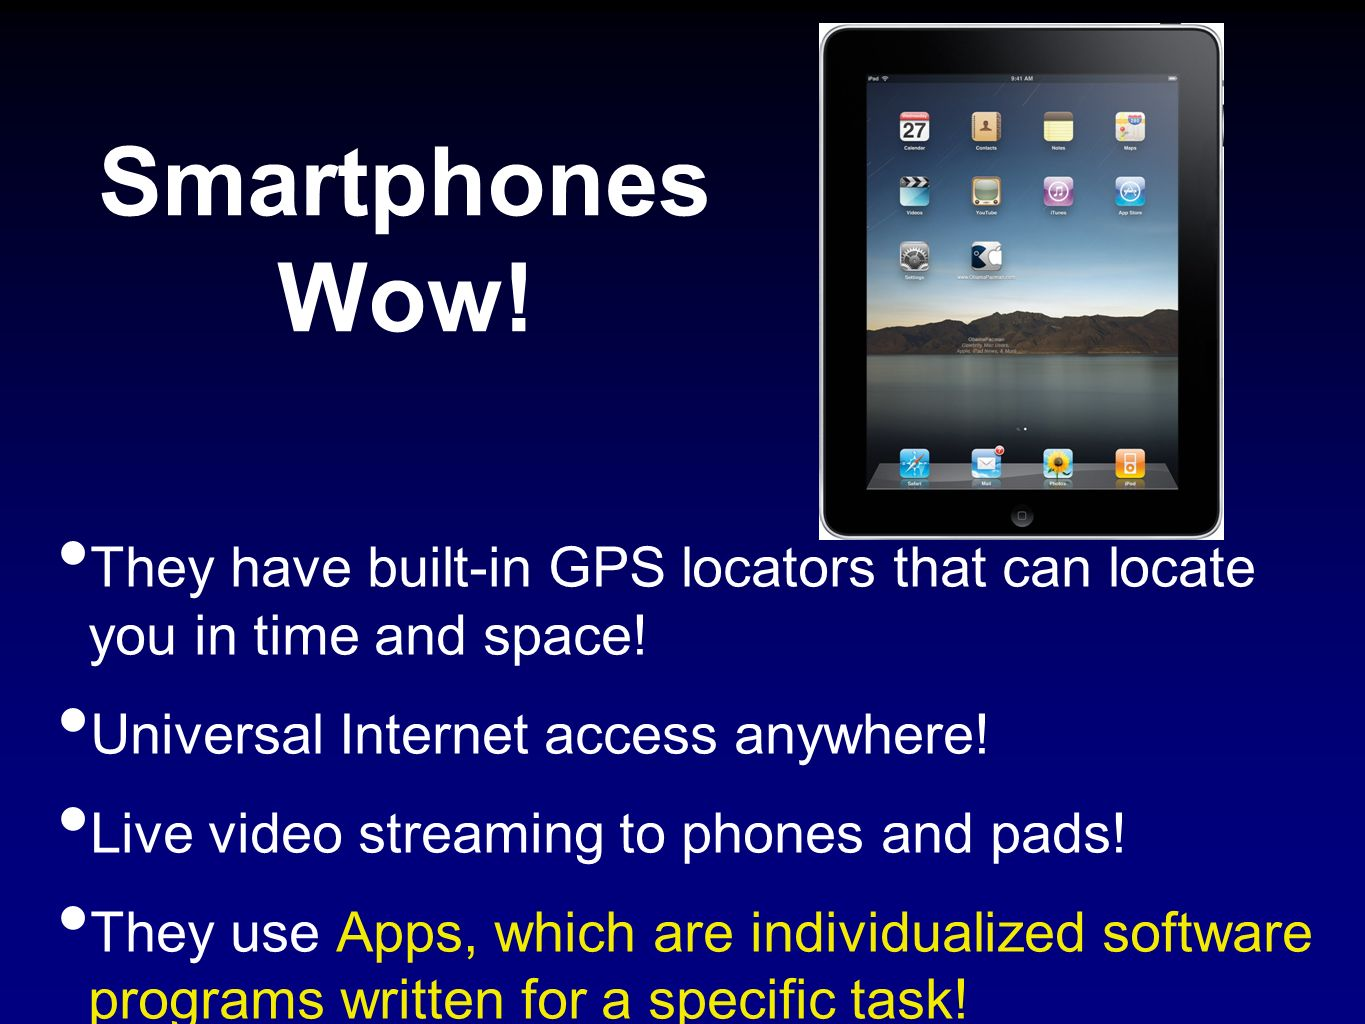 Smartphones Wow! They have built-in GPS locators that can locate you in time and space! Universal Internet access anywhere!